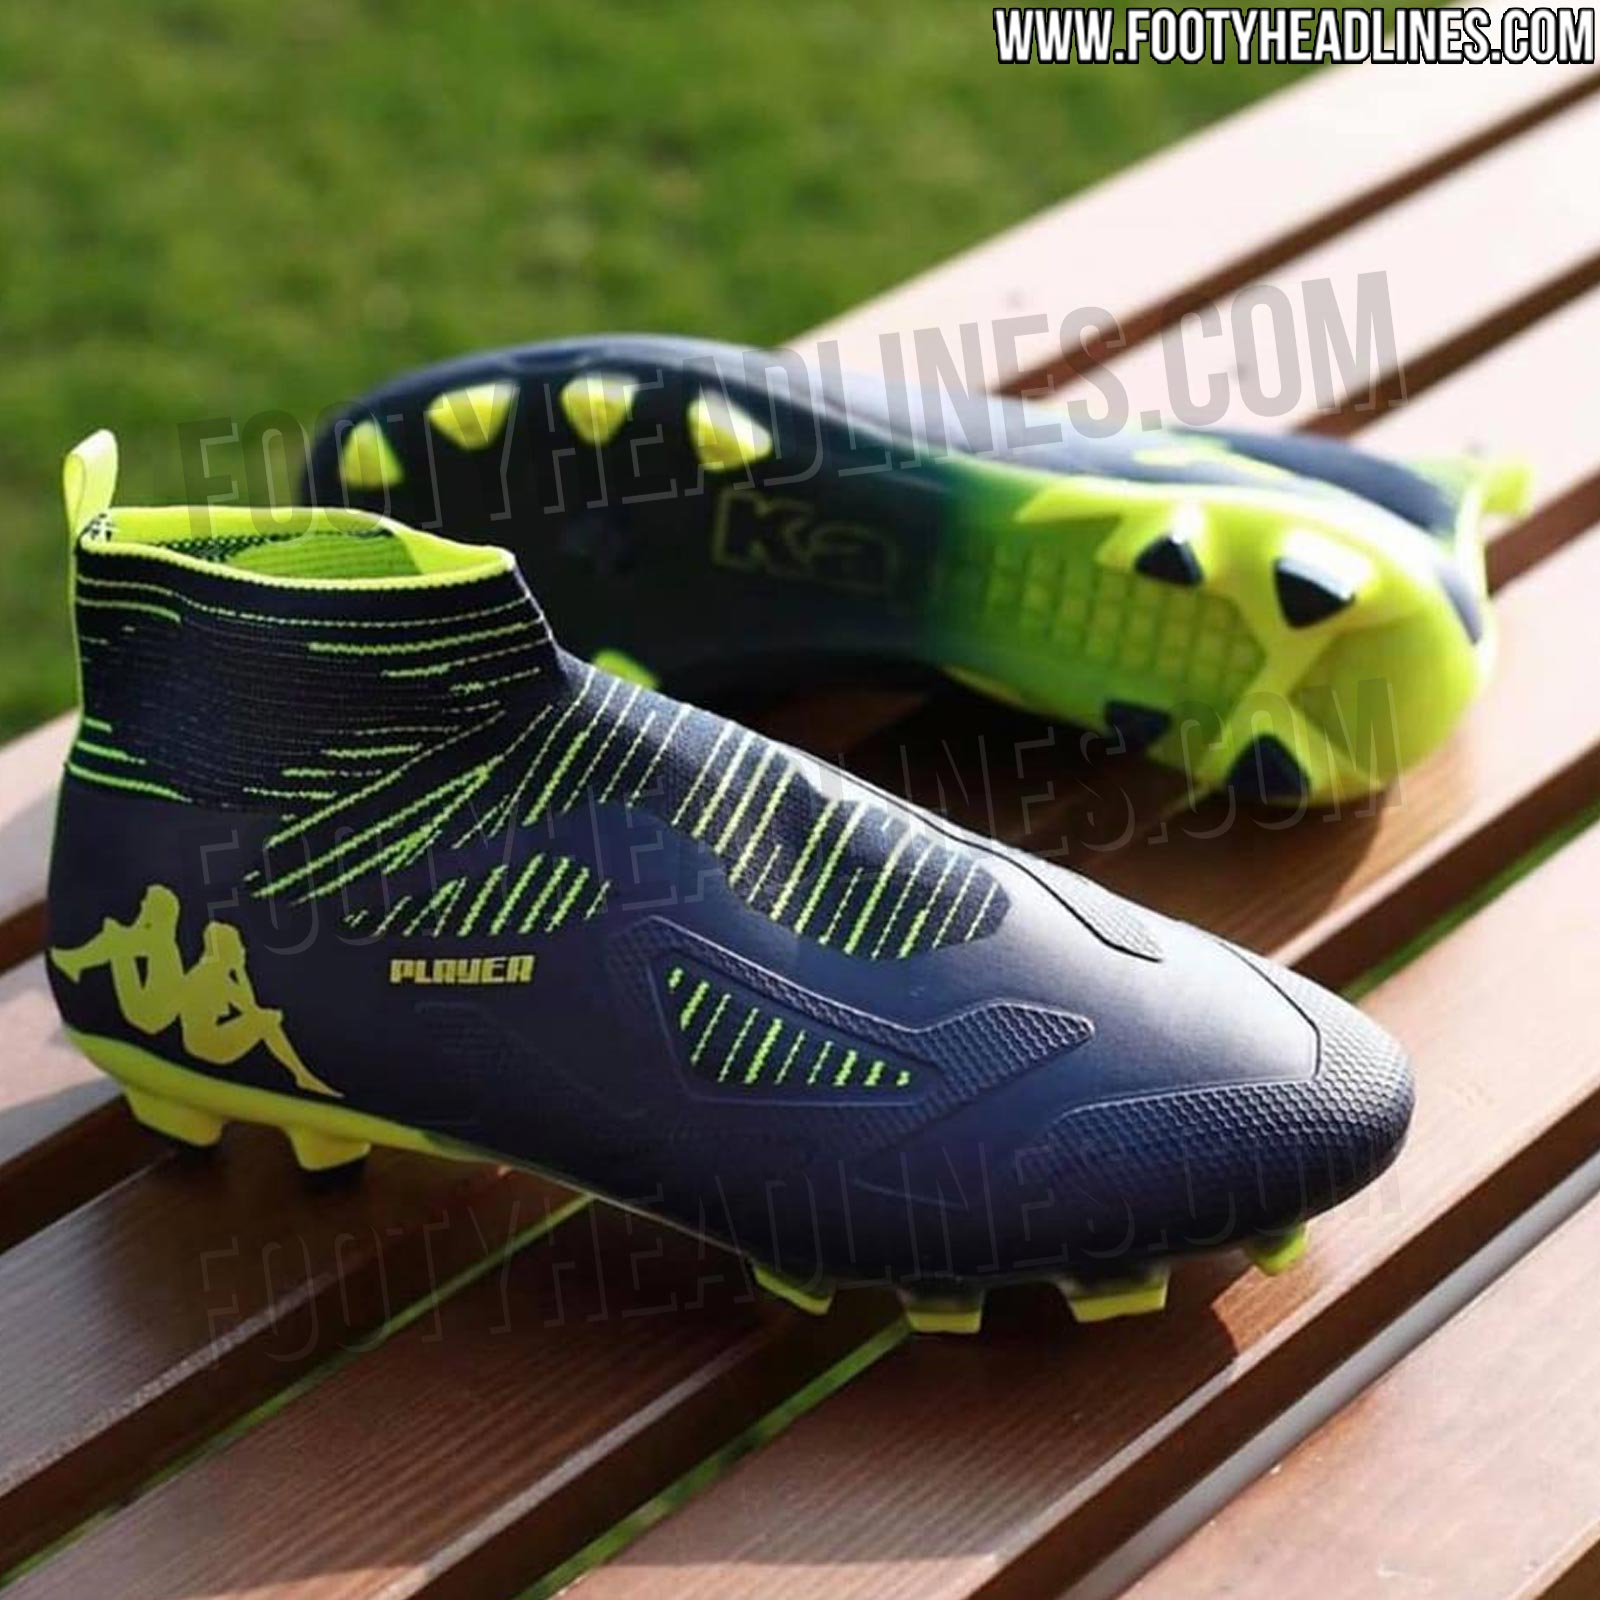 85b415280ebba First-Ever Kappa High-Cut Laceless Football Boots Leaked - Footy ...